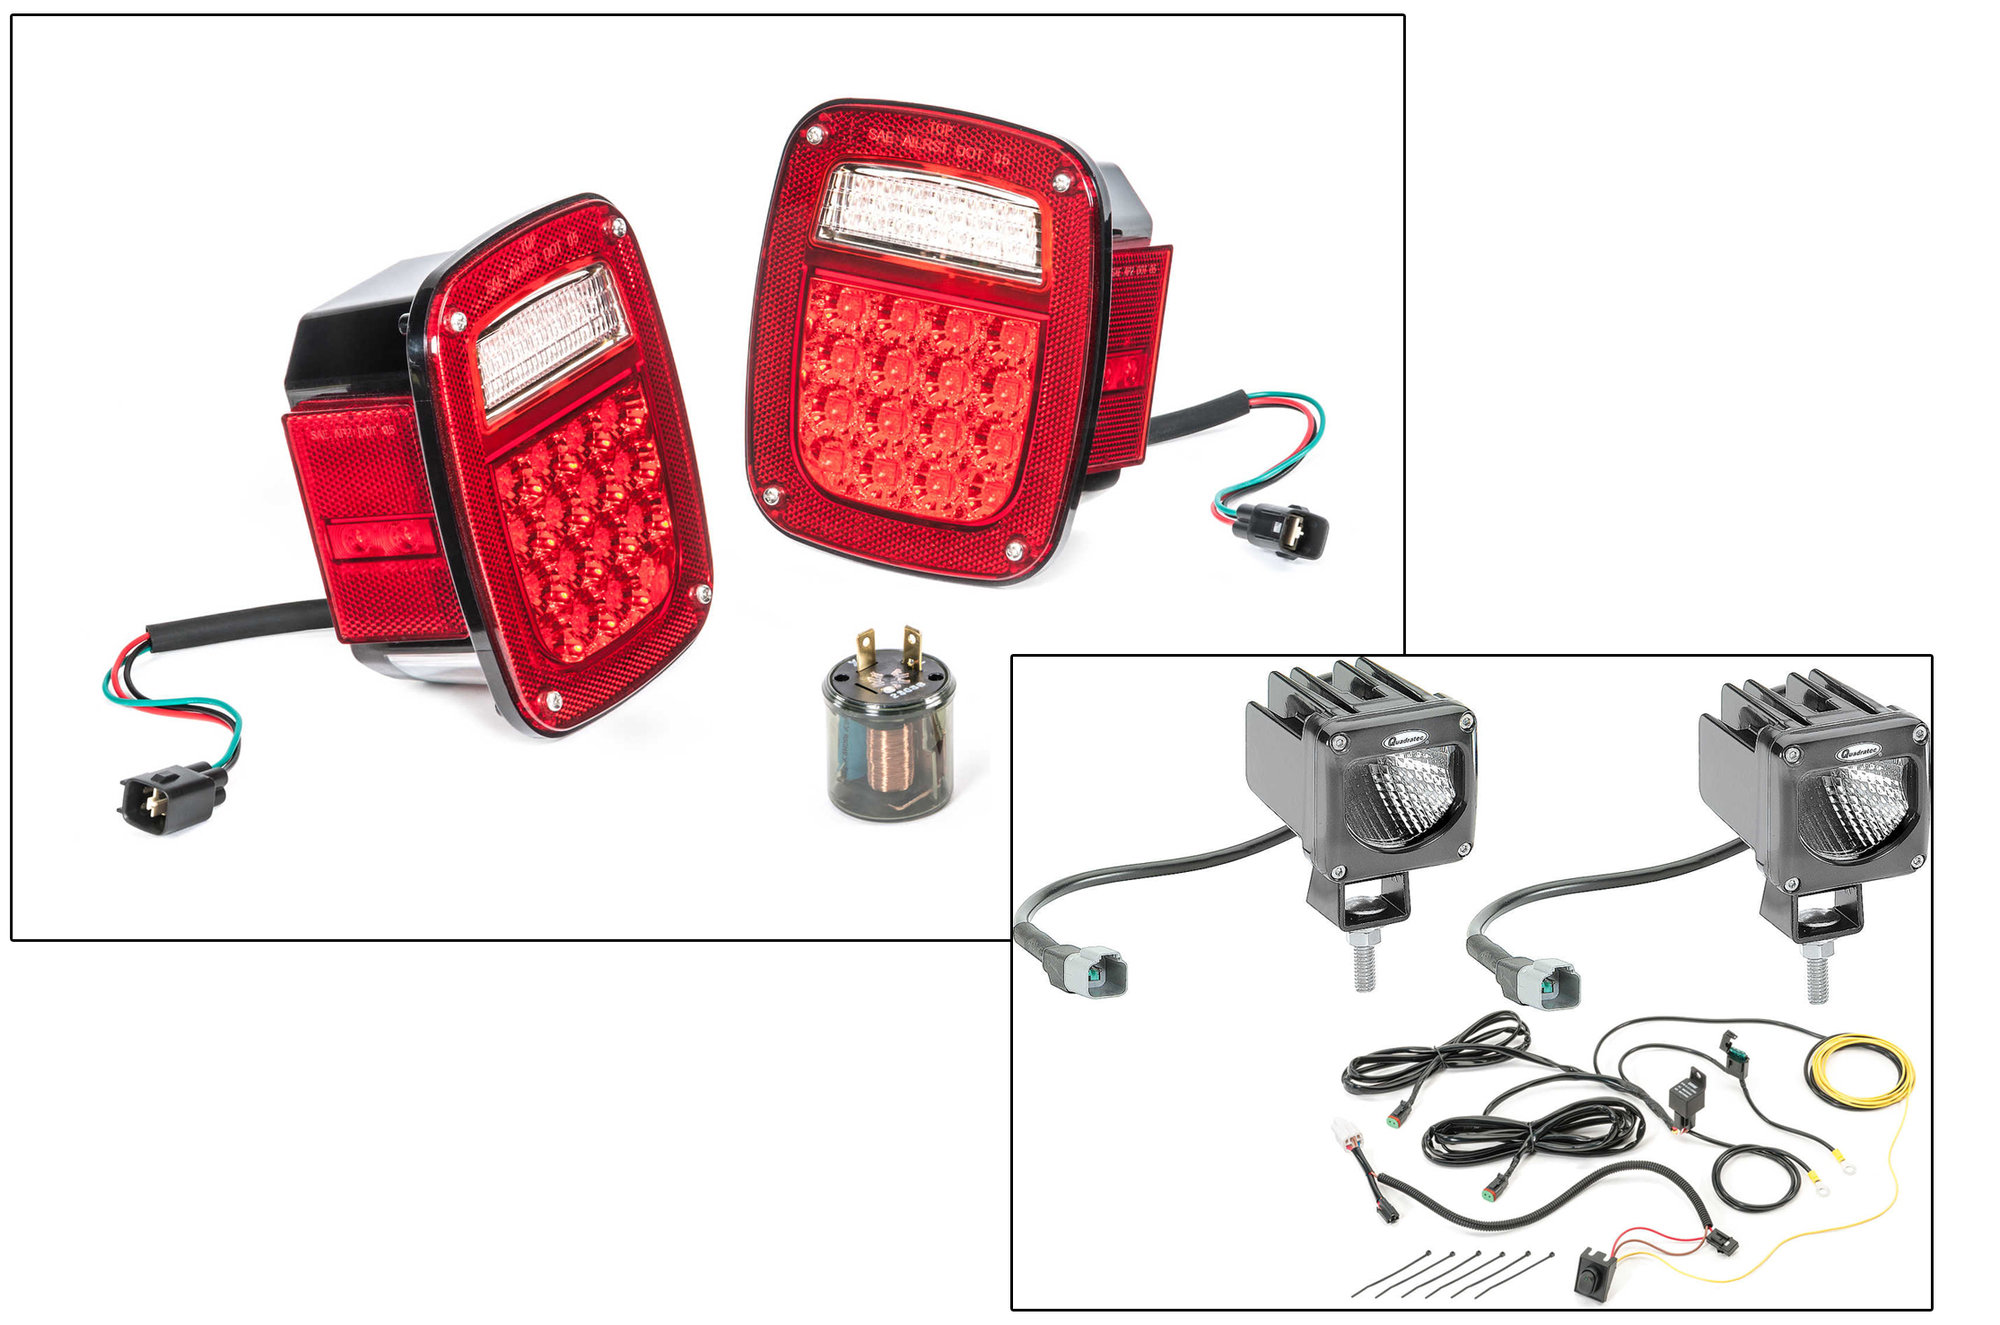 hight resolution of led tail light kit with 2 cube led with wiring harness for 81 86 jeep cj 5 cj 7 cj 8 scrambler